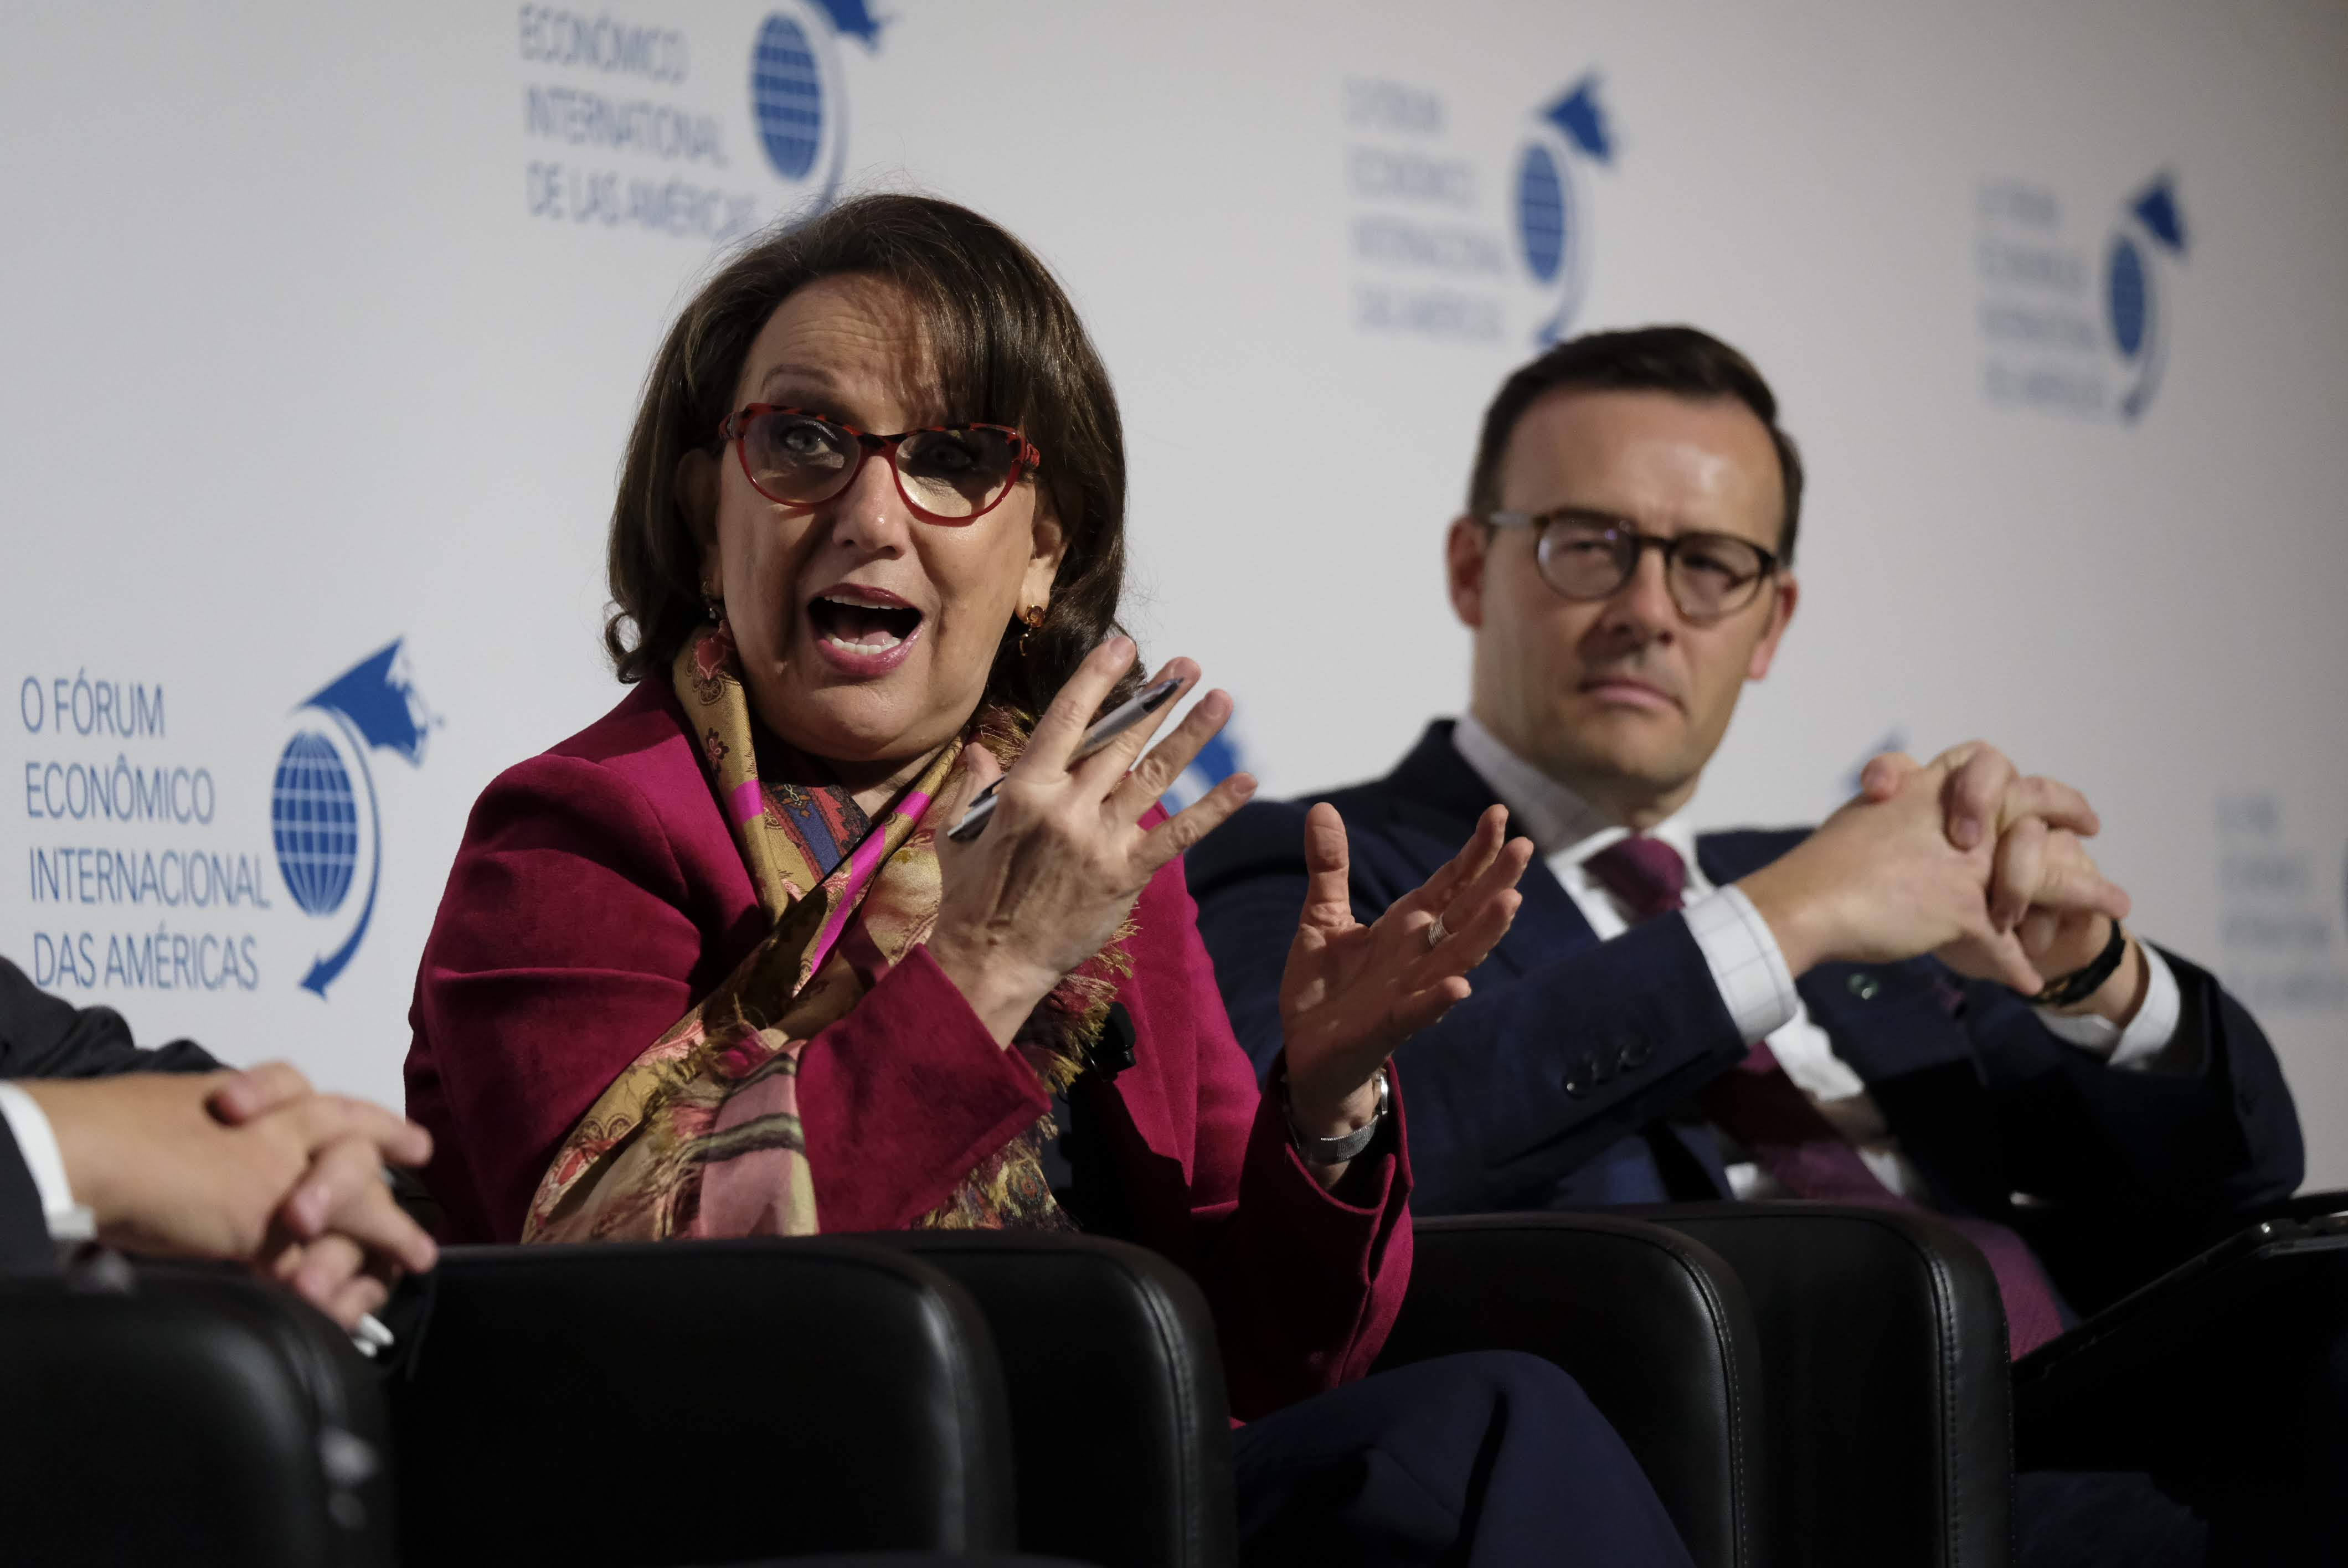 Rebeca Grynspan, Secretary General, Secretaría General Iberoamericana (SEGIB) and Guy Cormier, President and Chief Executive Officer, Desjardins Group